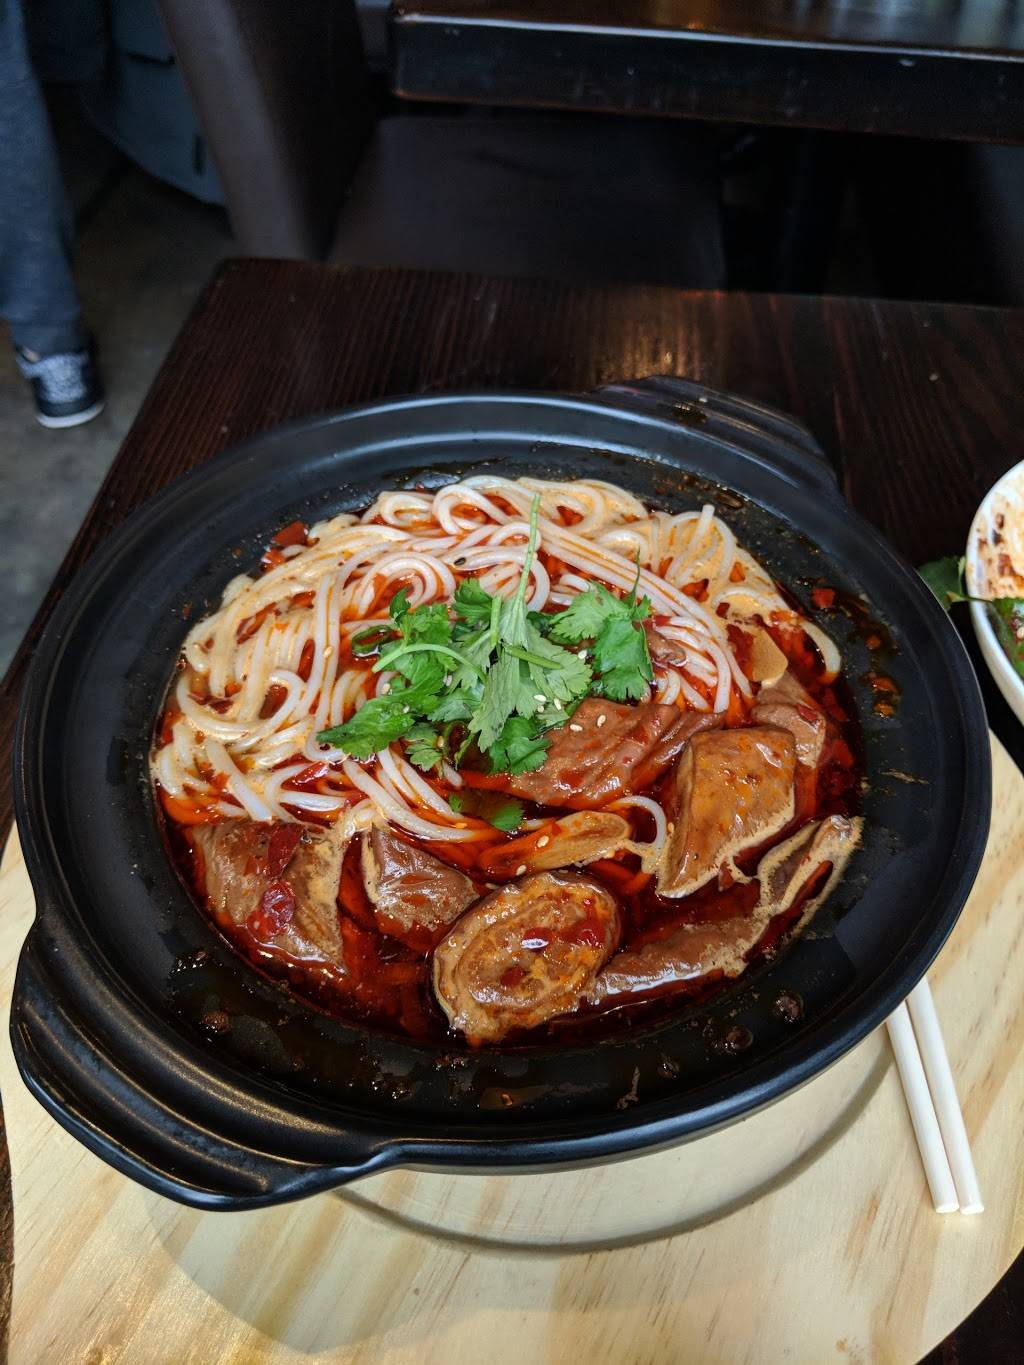 Shanghai Best | meal takeaway | 95 Montgomery St, Jersey City, NJ 07302, USA | 2013336868 OR +1 201-333-6868